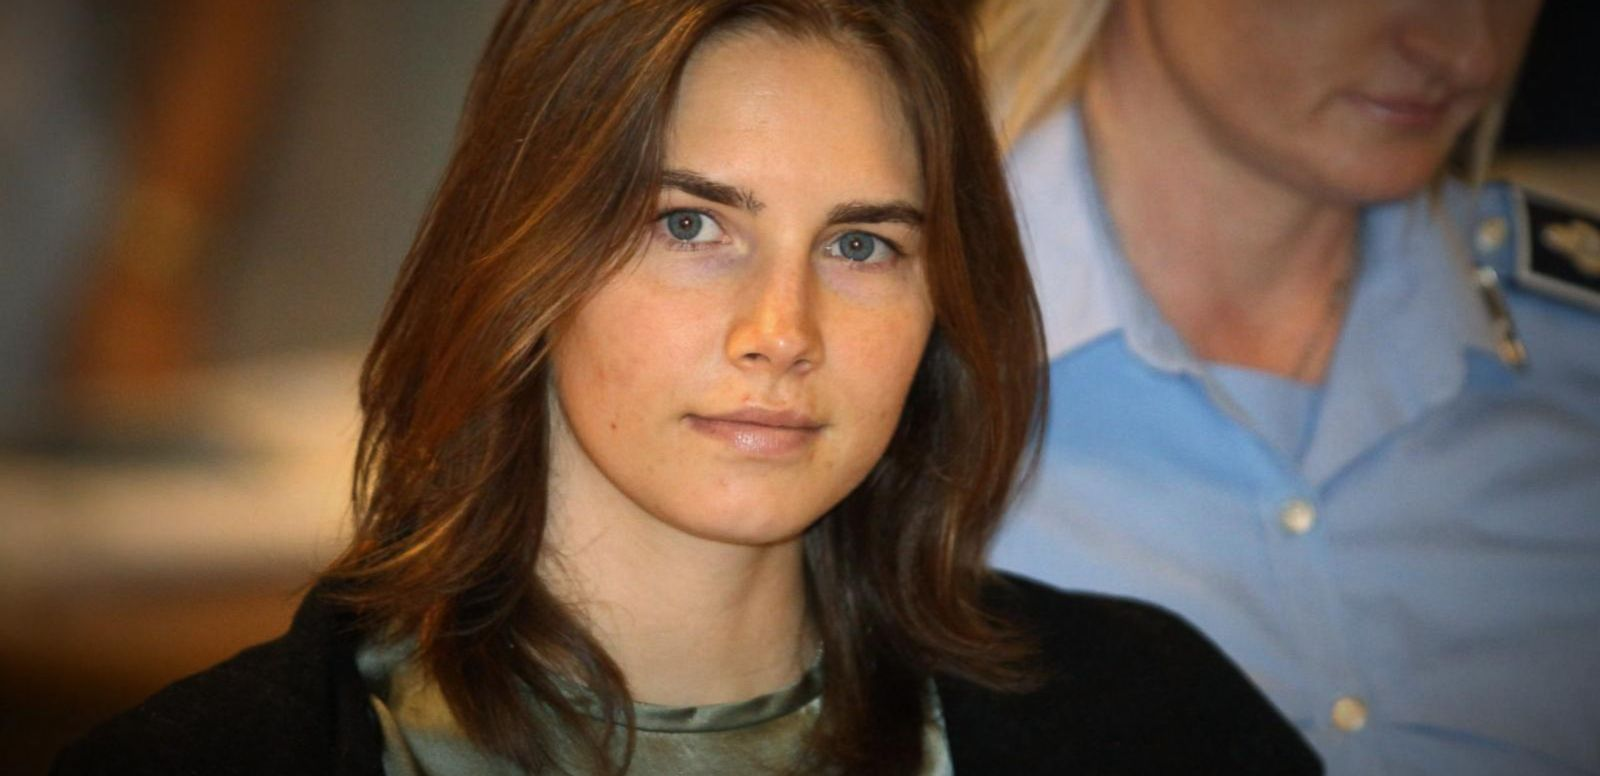 VIDEO: Amanda Knox's Trial Reaches Final Verdict